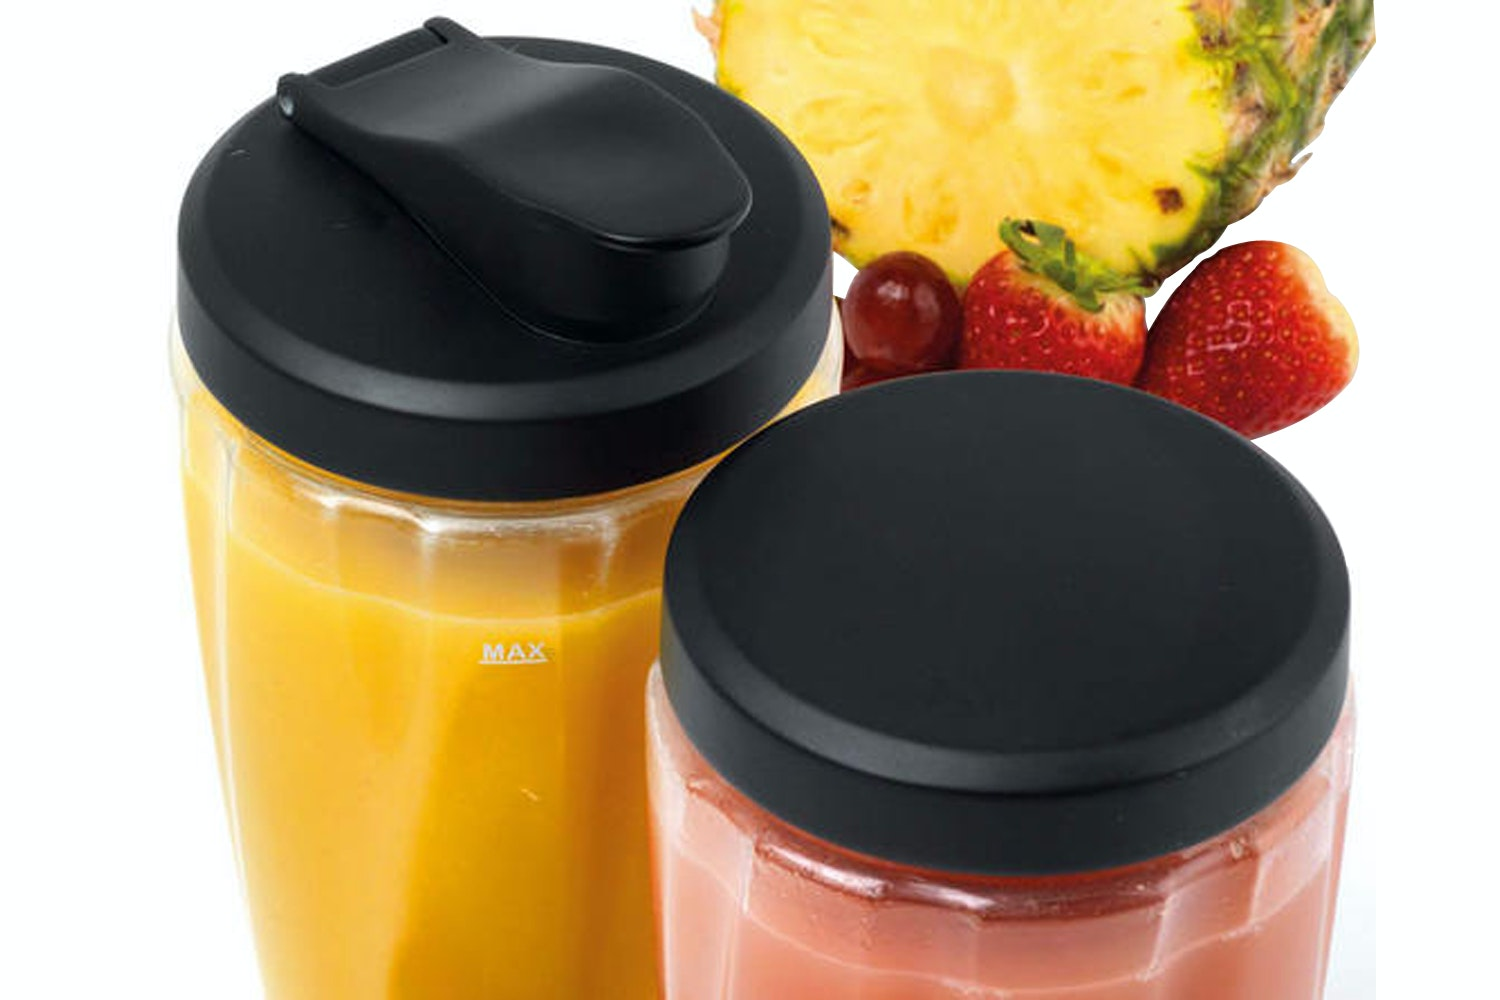 Salter Nutri Vortex Super Charged Blender